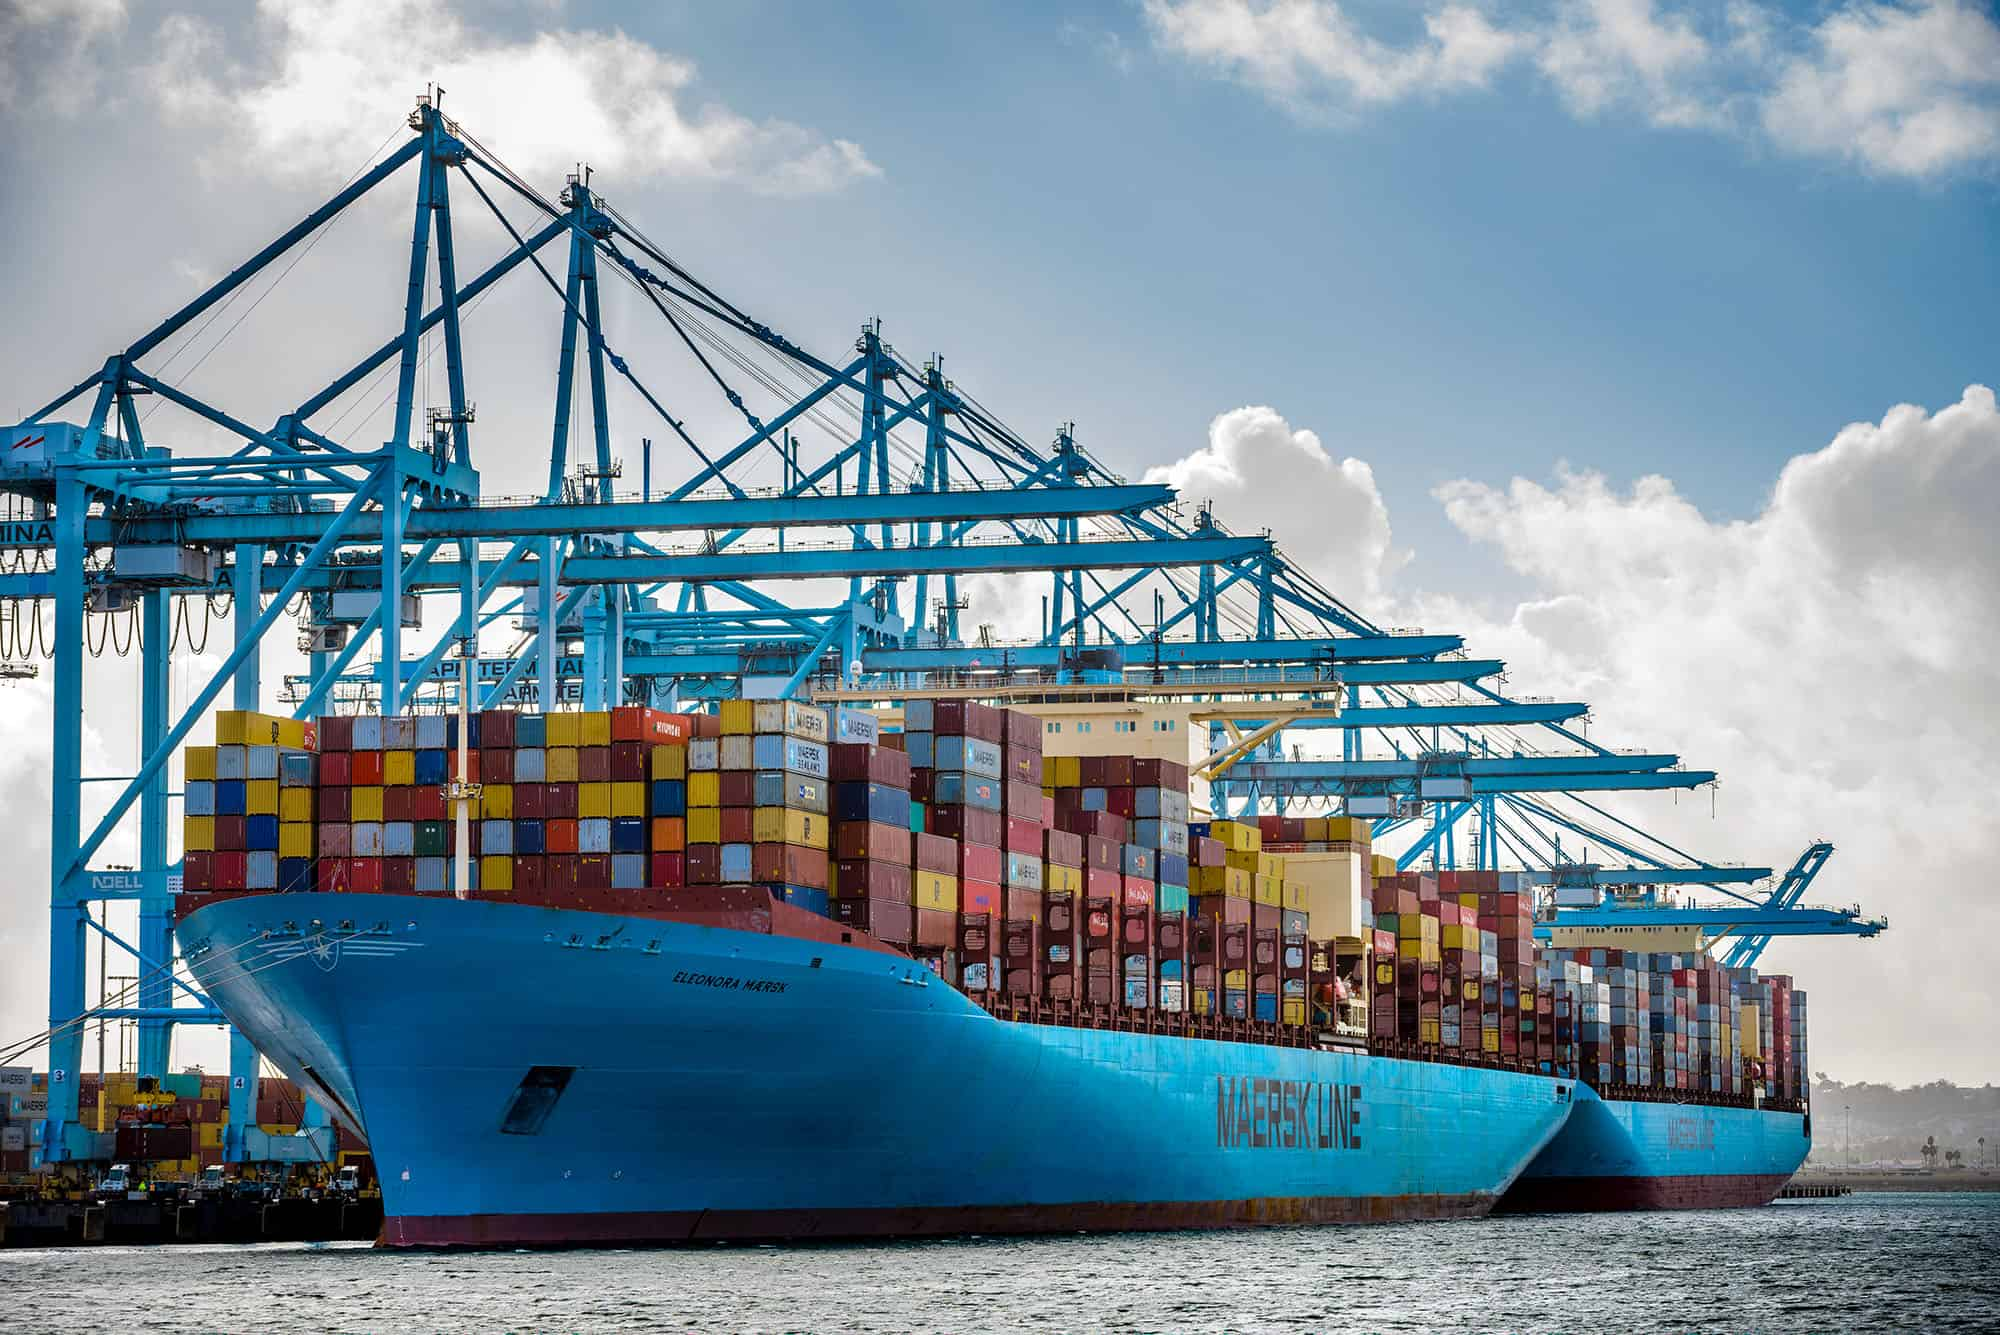 Maersk profits jump in Q3 spurred by capacity management and demand recovery